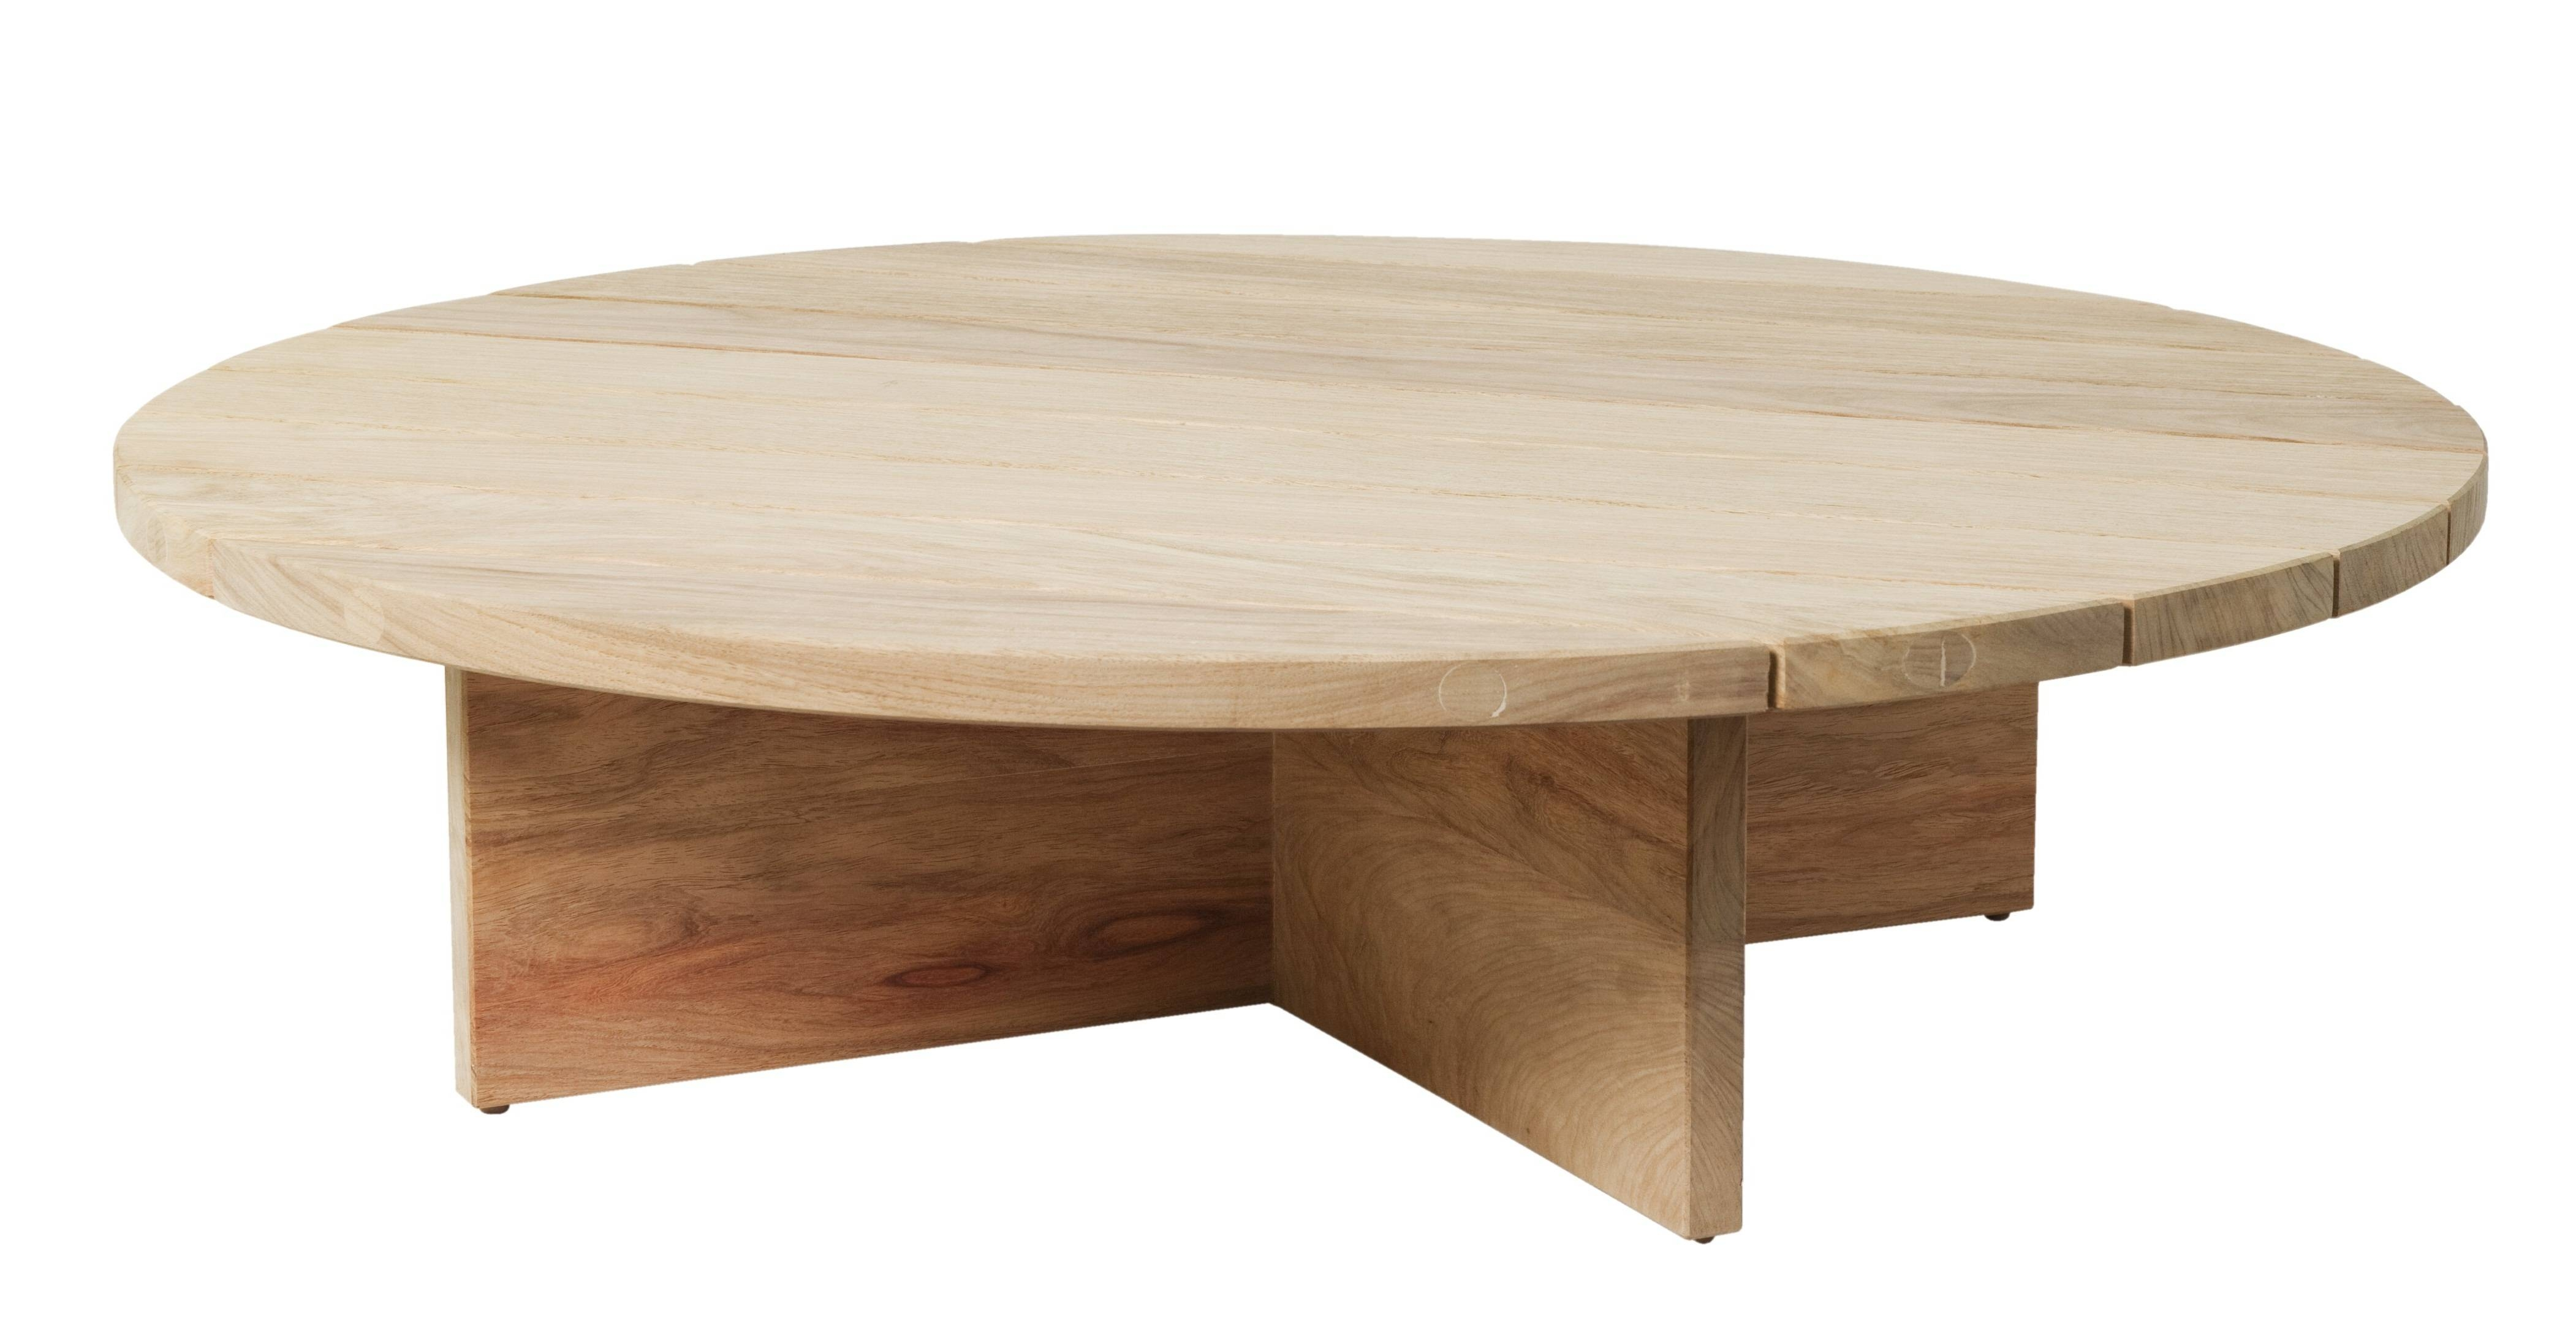 Timber Round Wooden Coffee Table Simple Design – Side Tables For within Chunky Rustic Coffee Tables (Image 23 of 30)